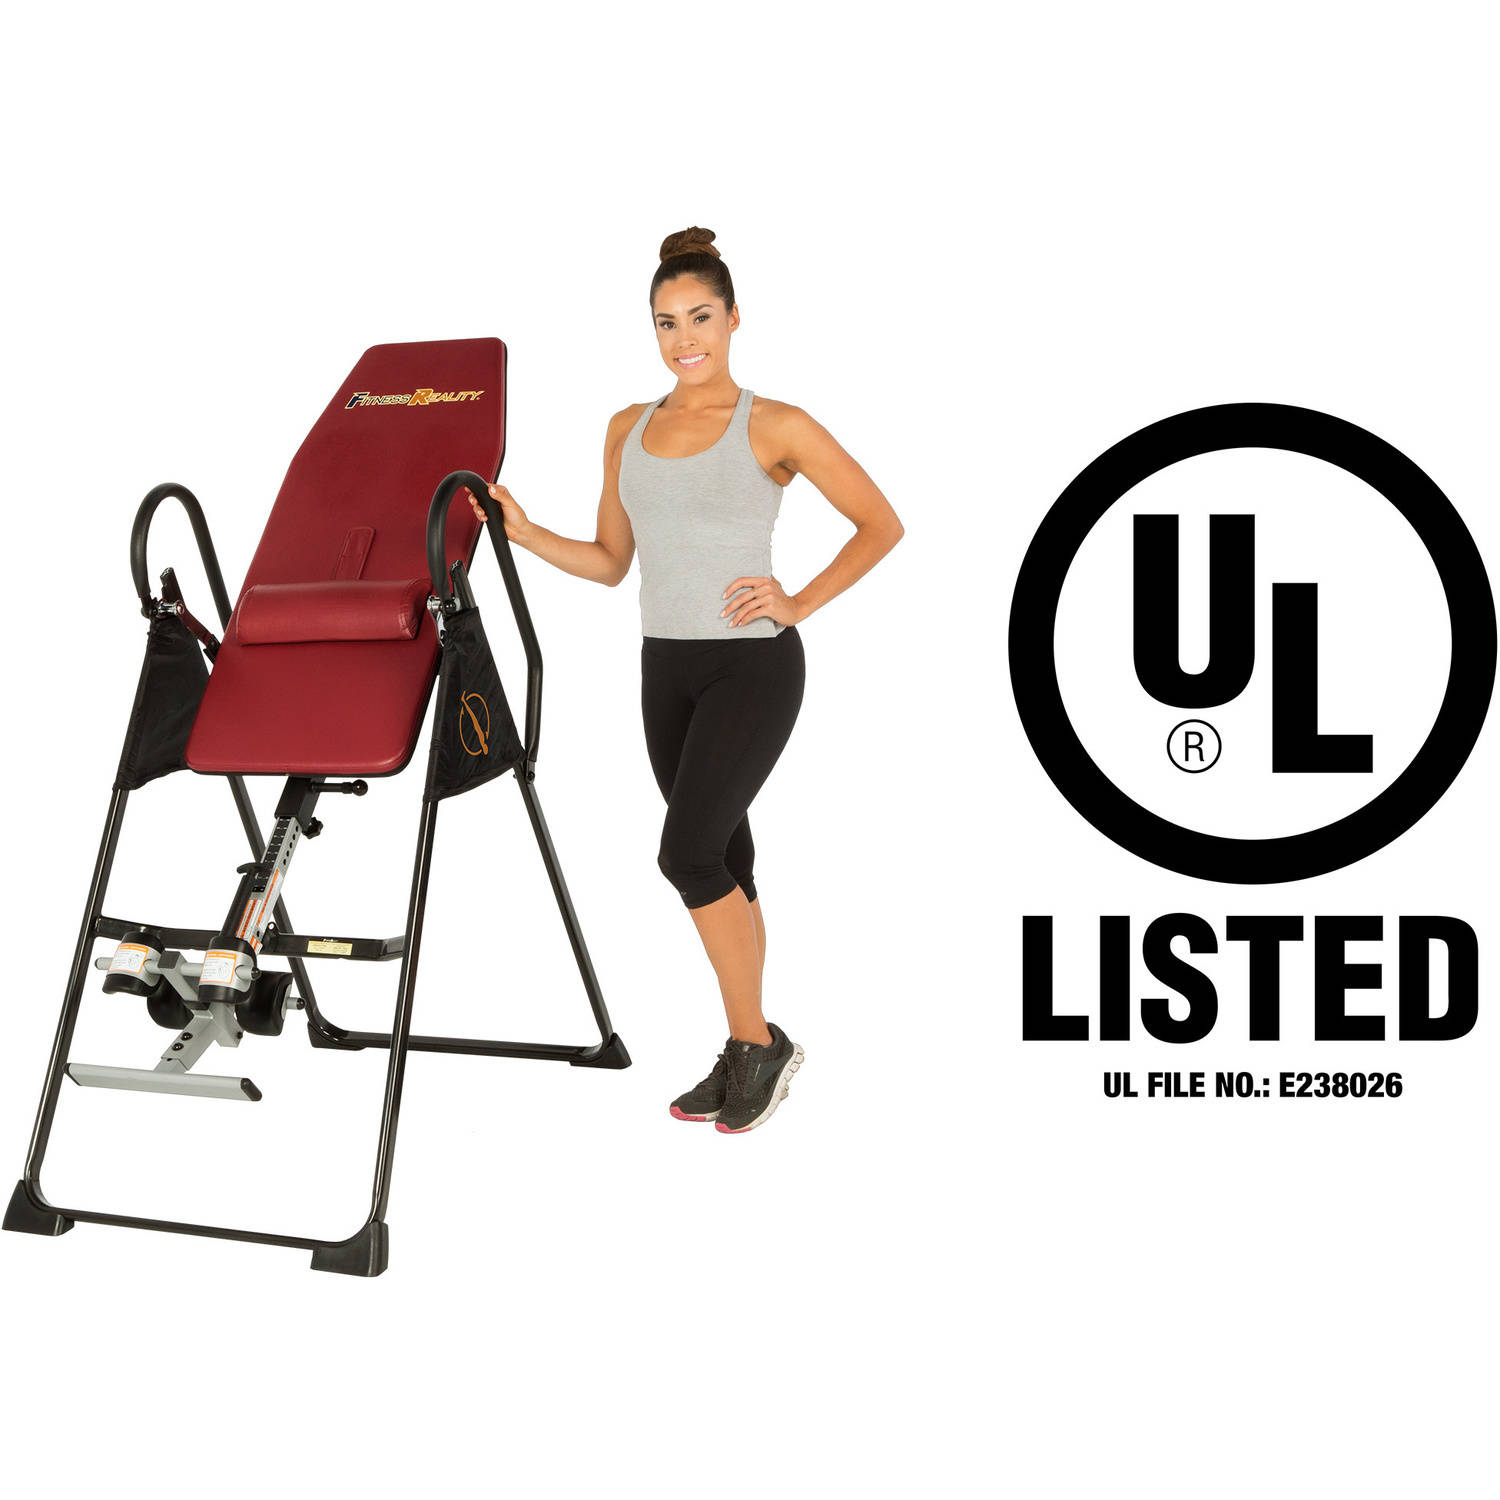 Fitness Reality 790XLT High Endurance Inversion Table with Lower Back Cushion by Paradigm Health and Wellness Inc